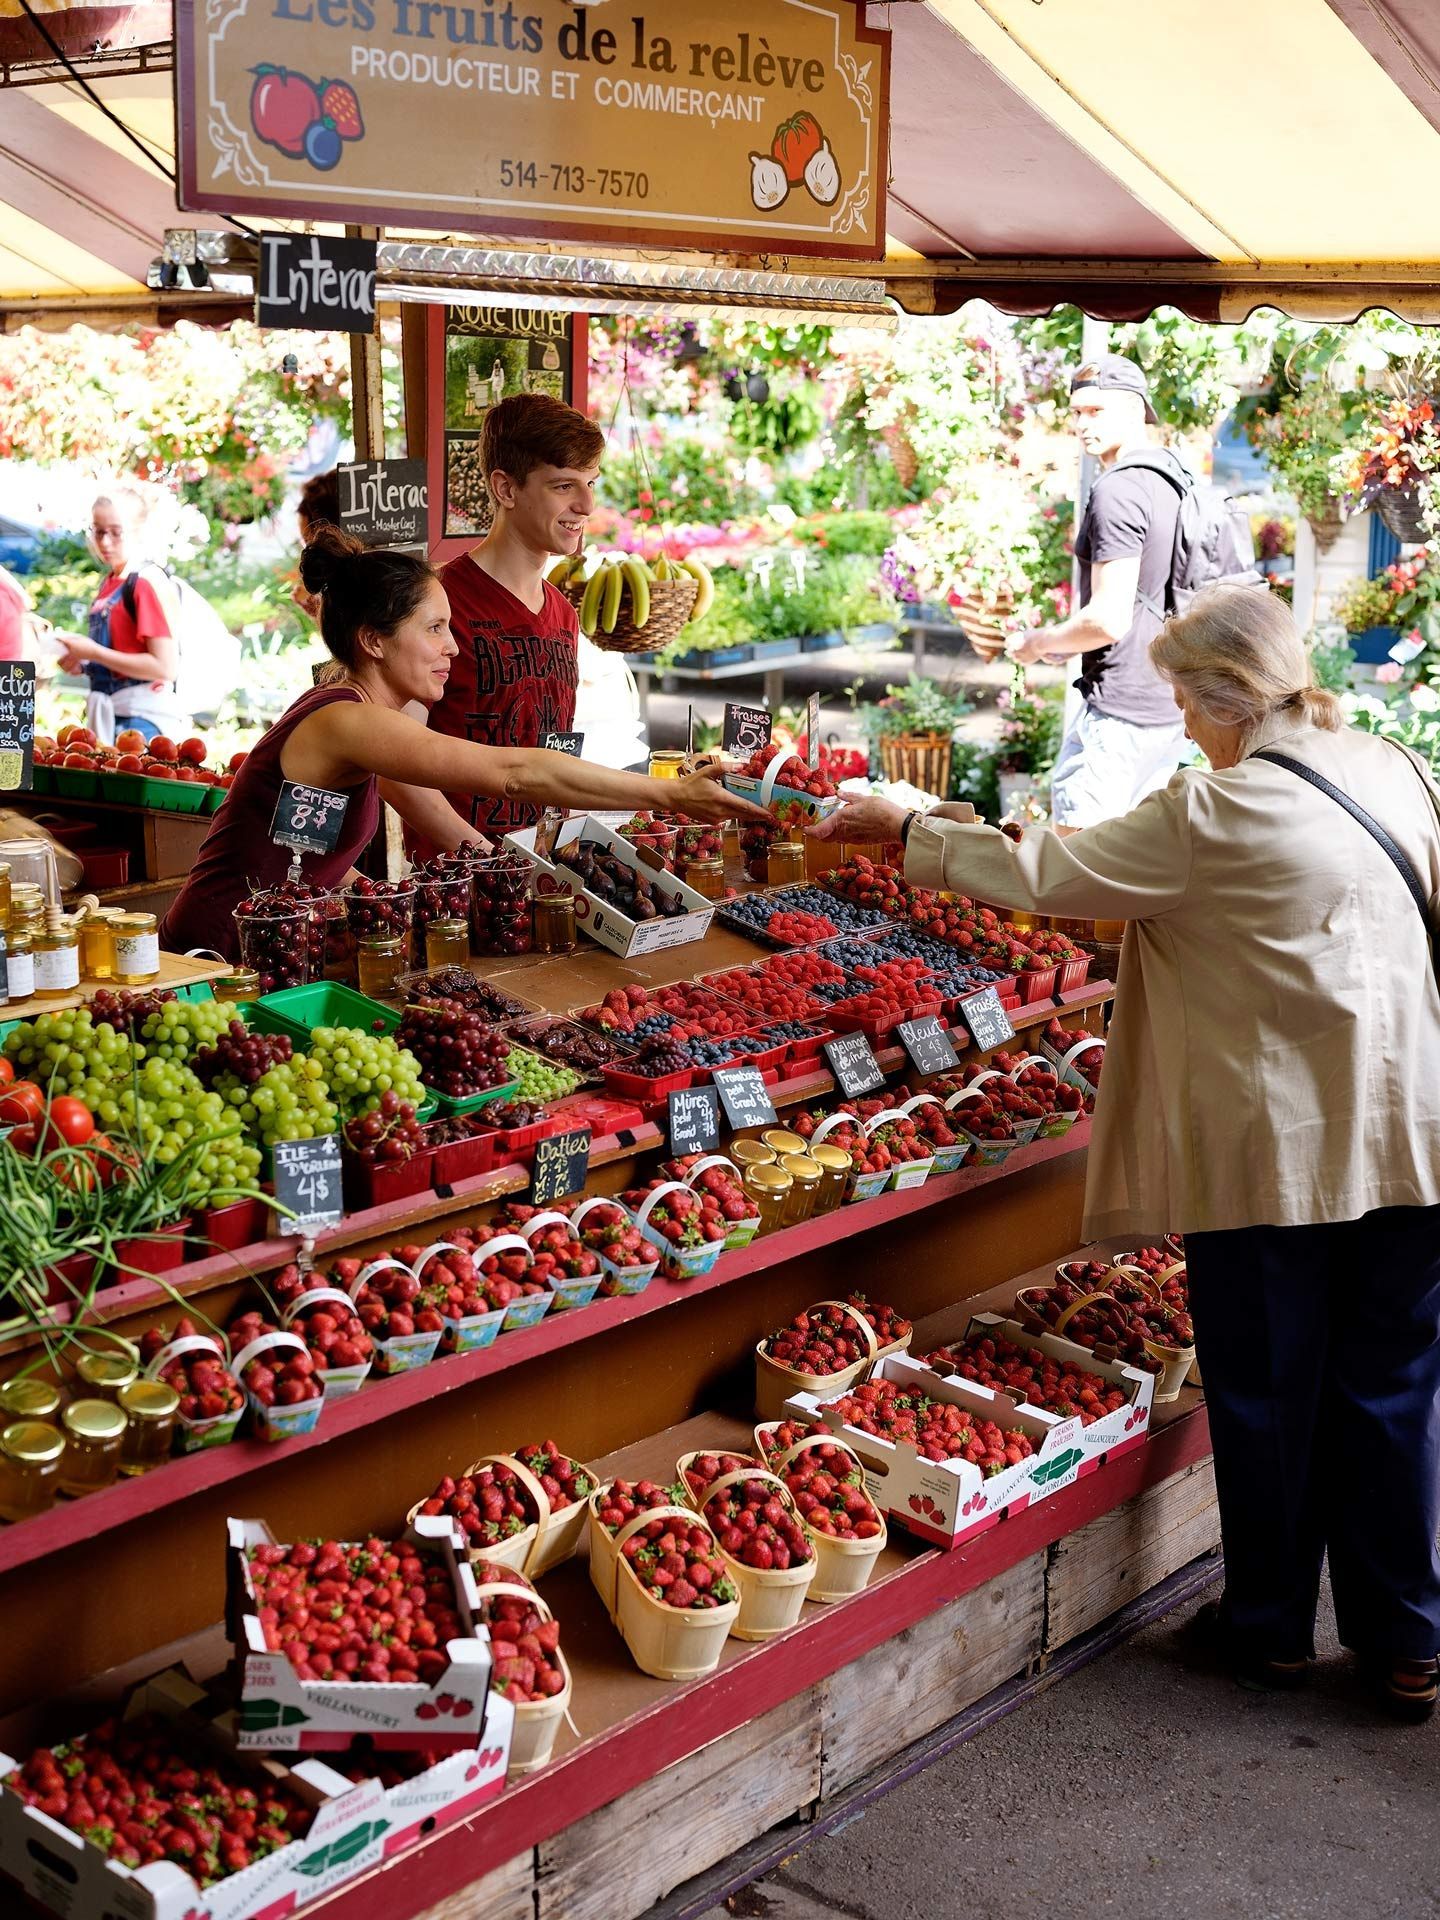 fresh fruits market stall showcasing baskets of strawberries raspberries blueberries grapes cherries and jars of honey with two vendors talking to an elderly woman photographed by Guillaume Simoneau as part of Off Duty Montreal series for The Wall Street Journal magazine